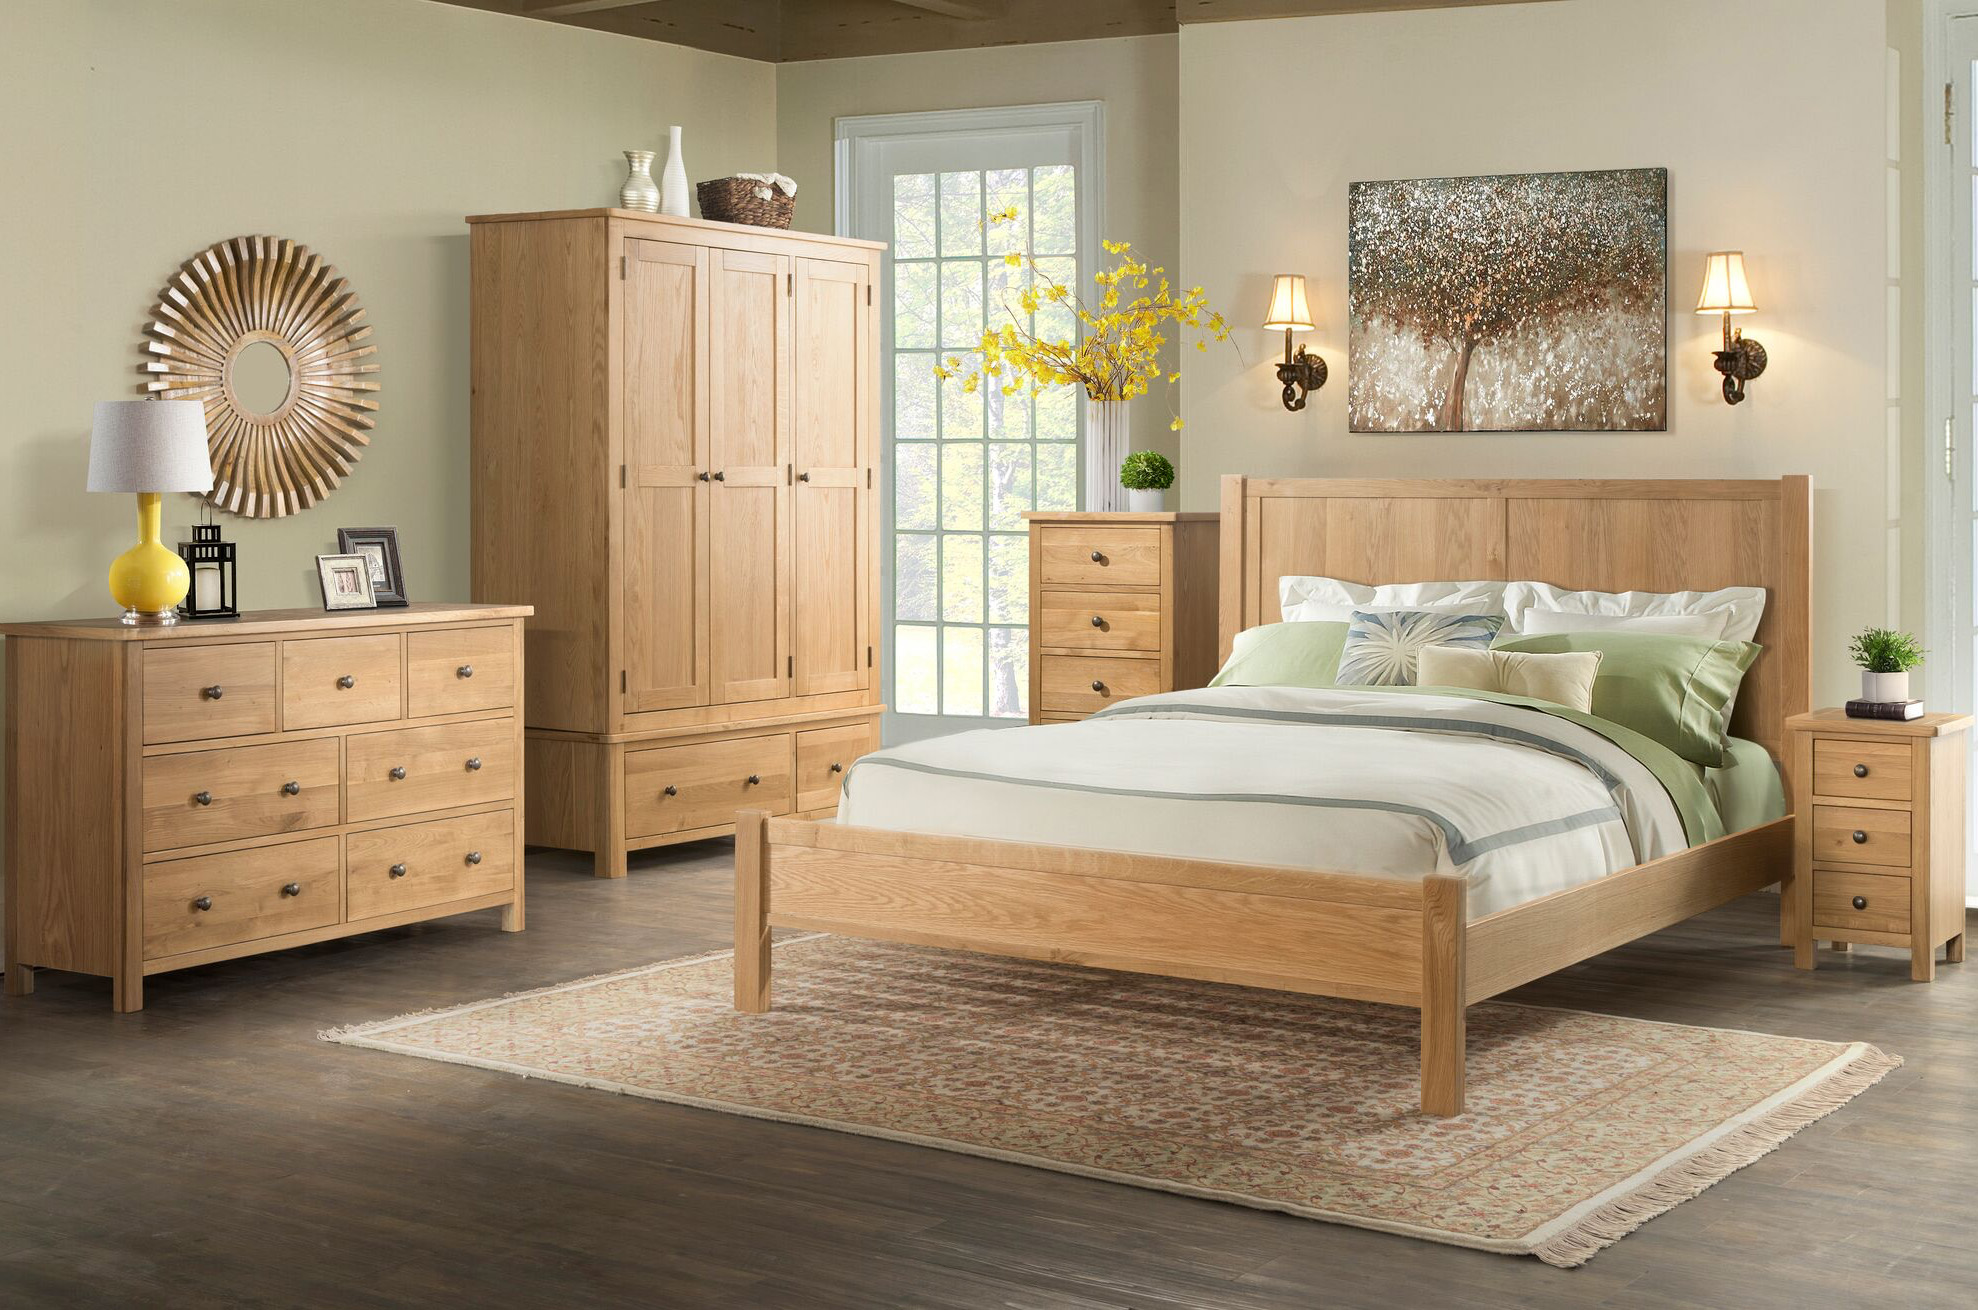 bedroom room furniture for france.